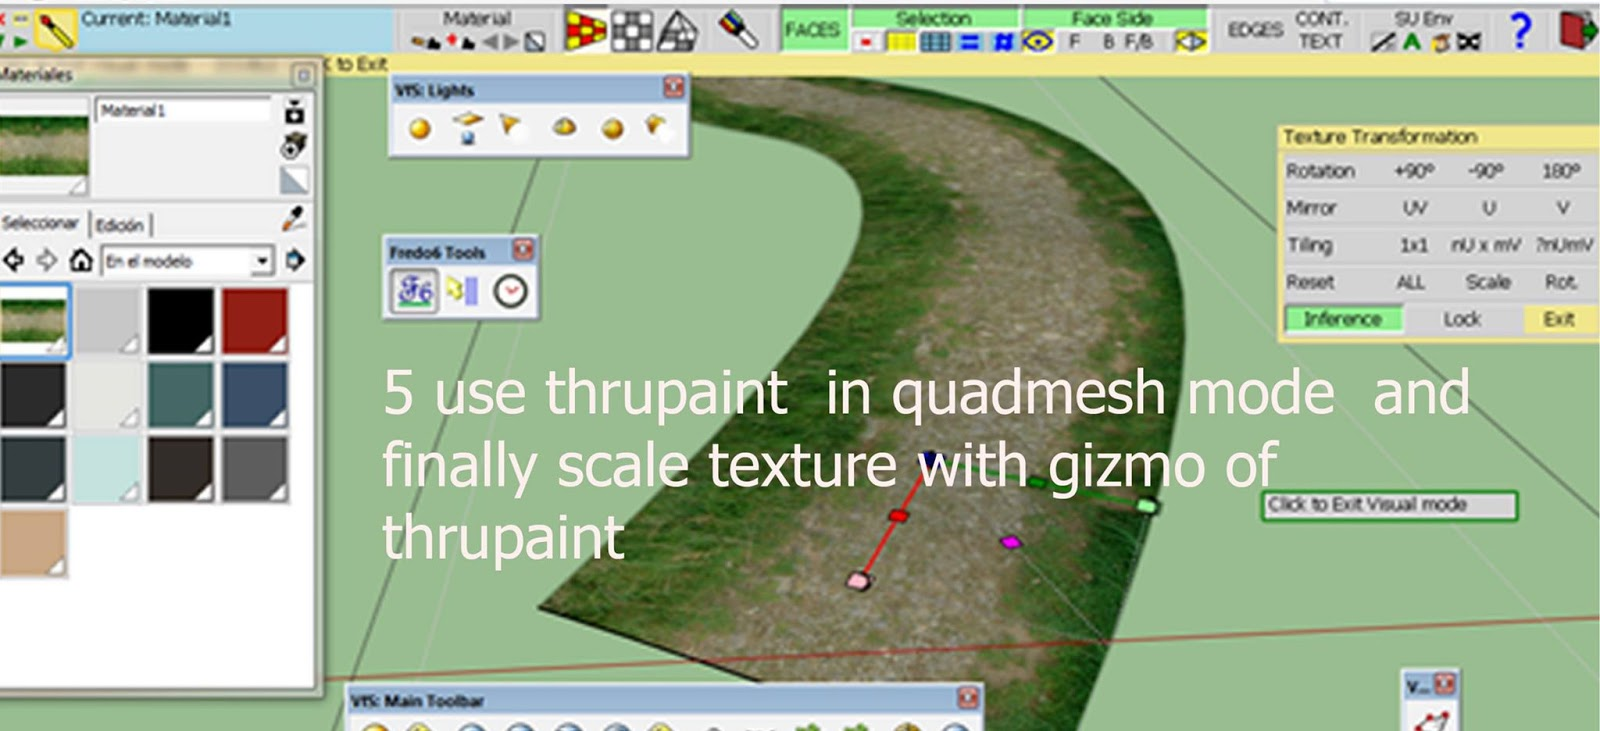 SKETCHUP TEXTURE: Sketchup tutorial - As perfectly texturize